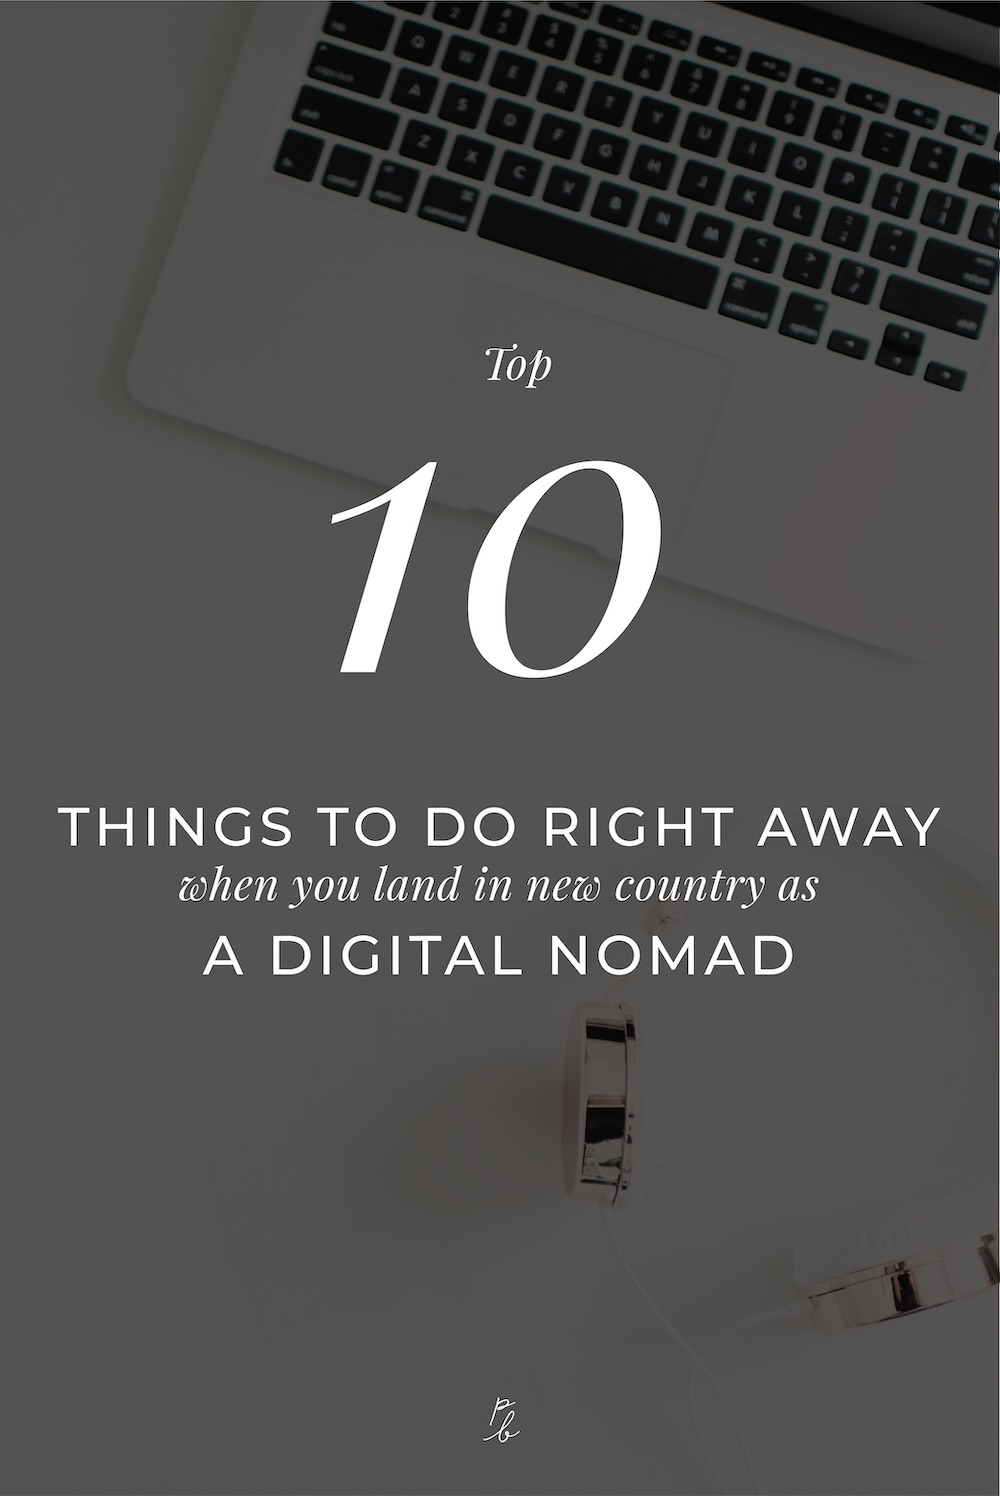 3-Top 10 things to do right away when you land in a new country as a digital nomad.jpg